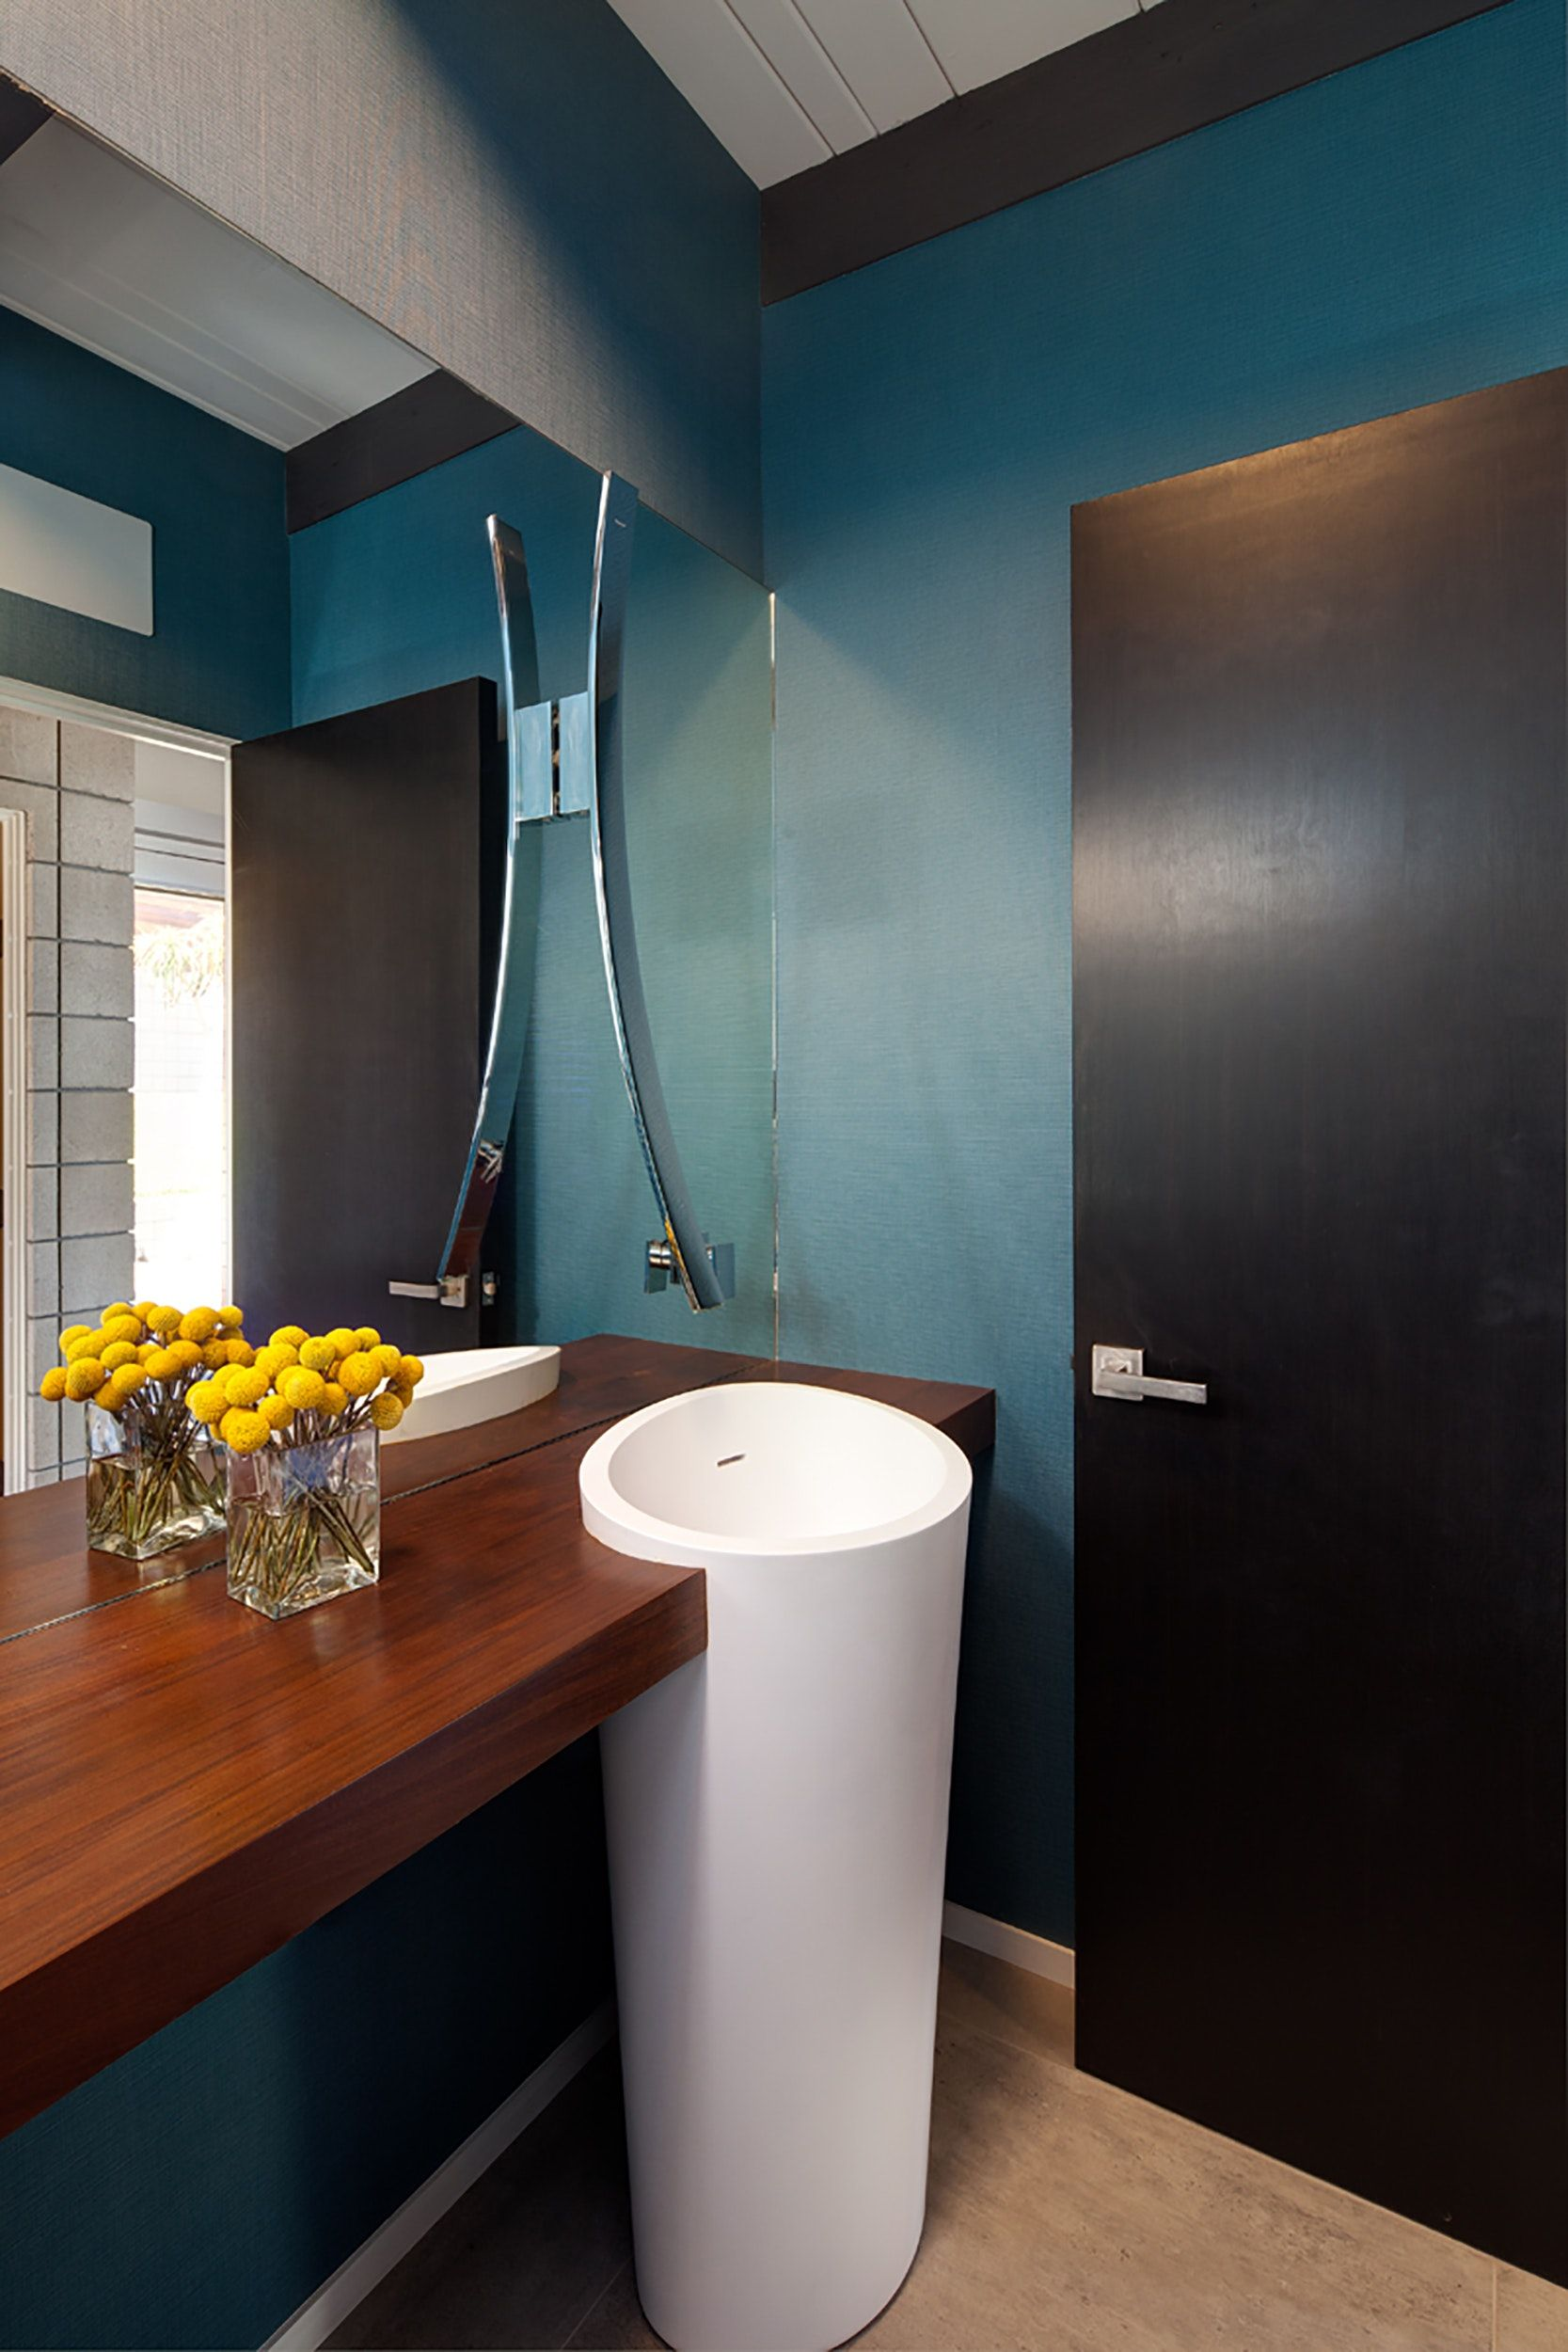 Pacific Beach Remodel, Powder Bath With Statement Faucet And Freestanding